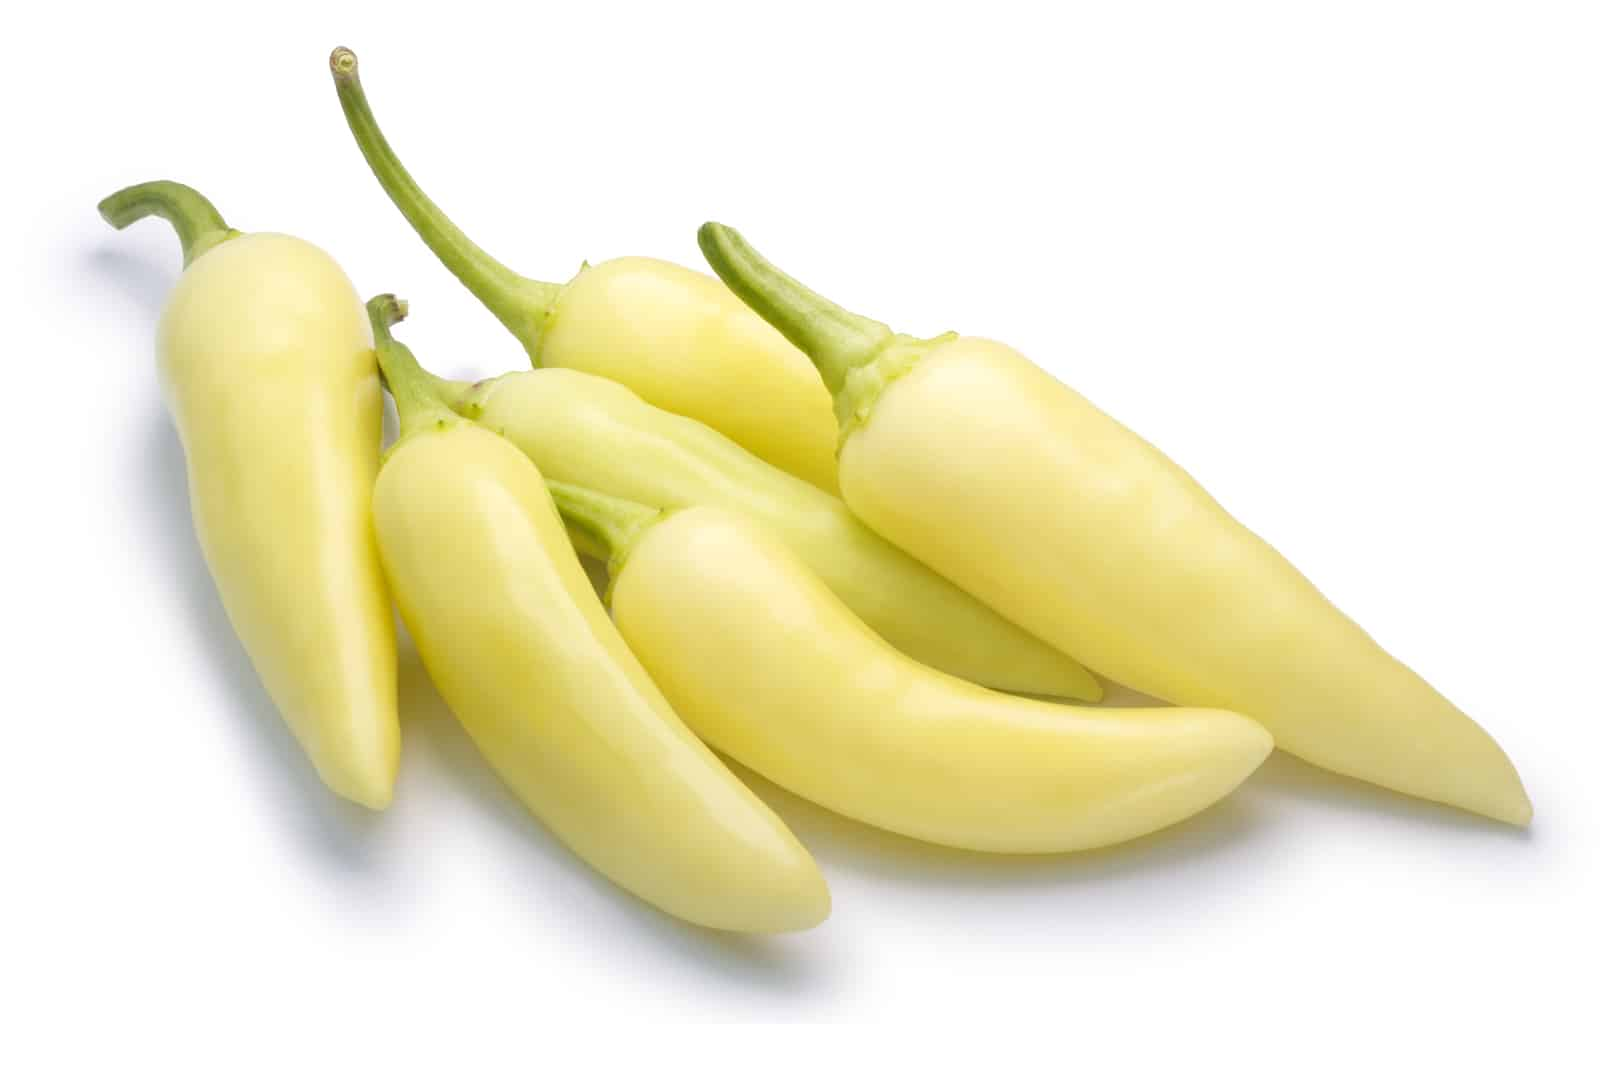 What's A Good Banana Pepper Substitute?